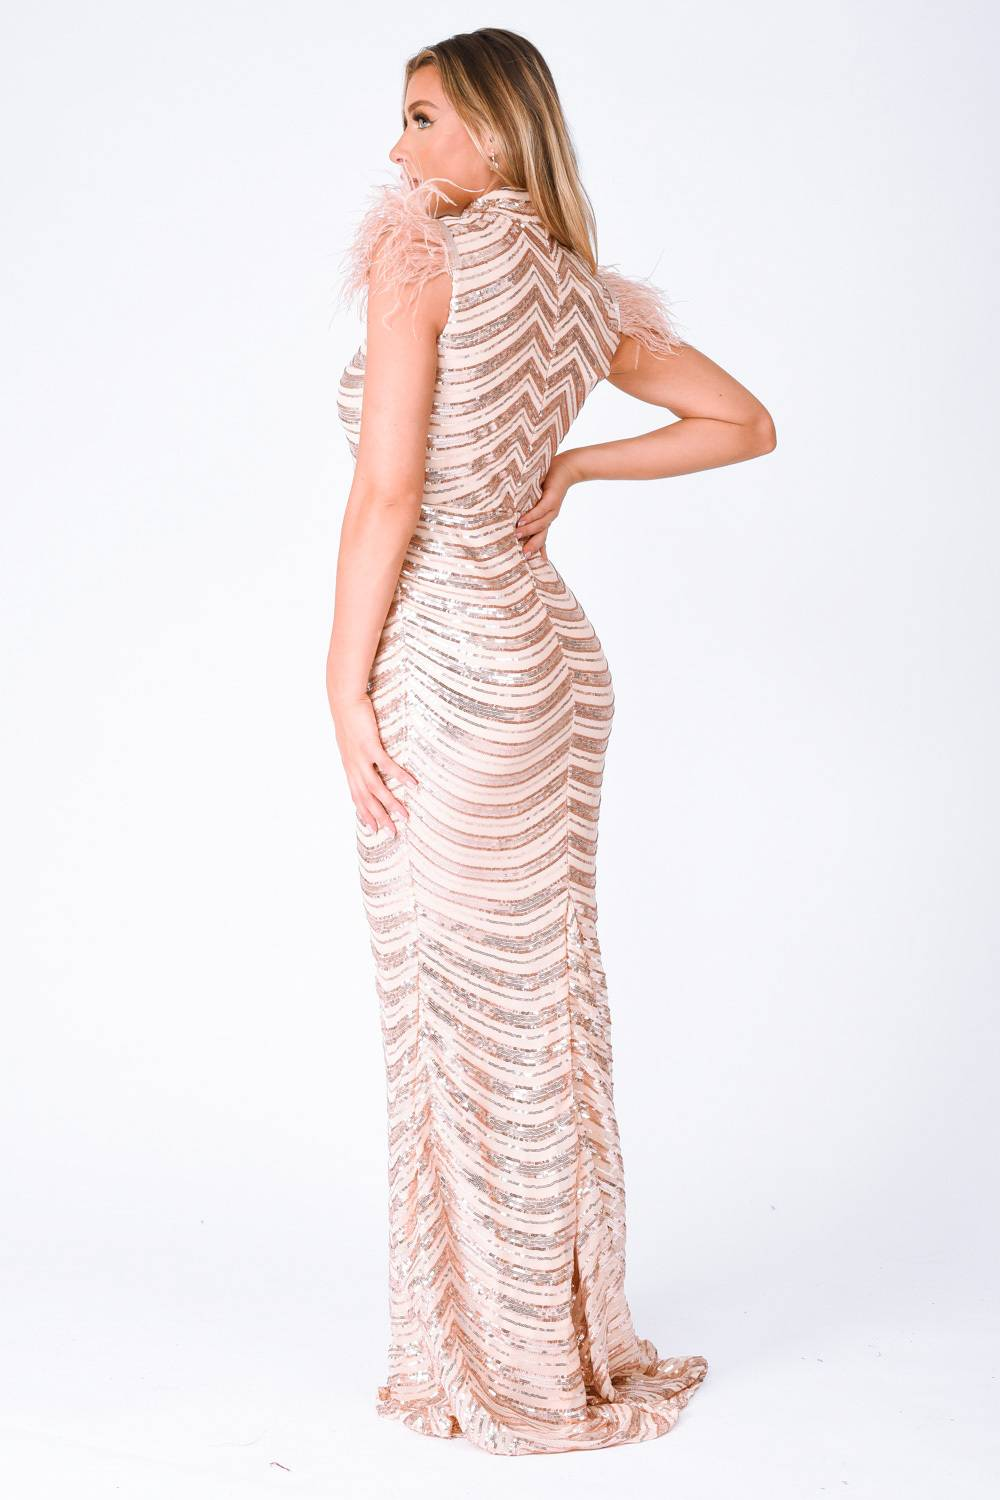 Power Vip Rose Gold Luxe Feather Shoulder Sequin Illusion Maxi Dress Nazz Collection